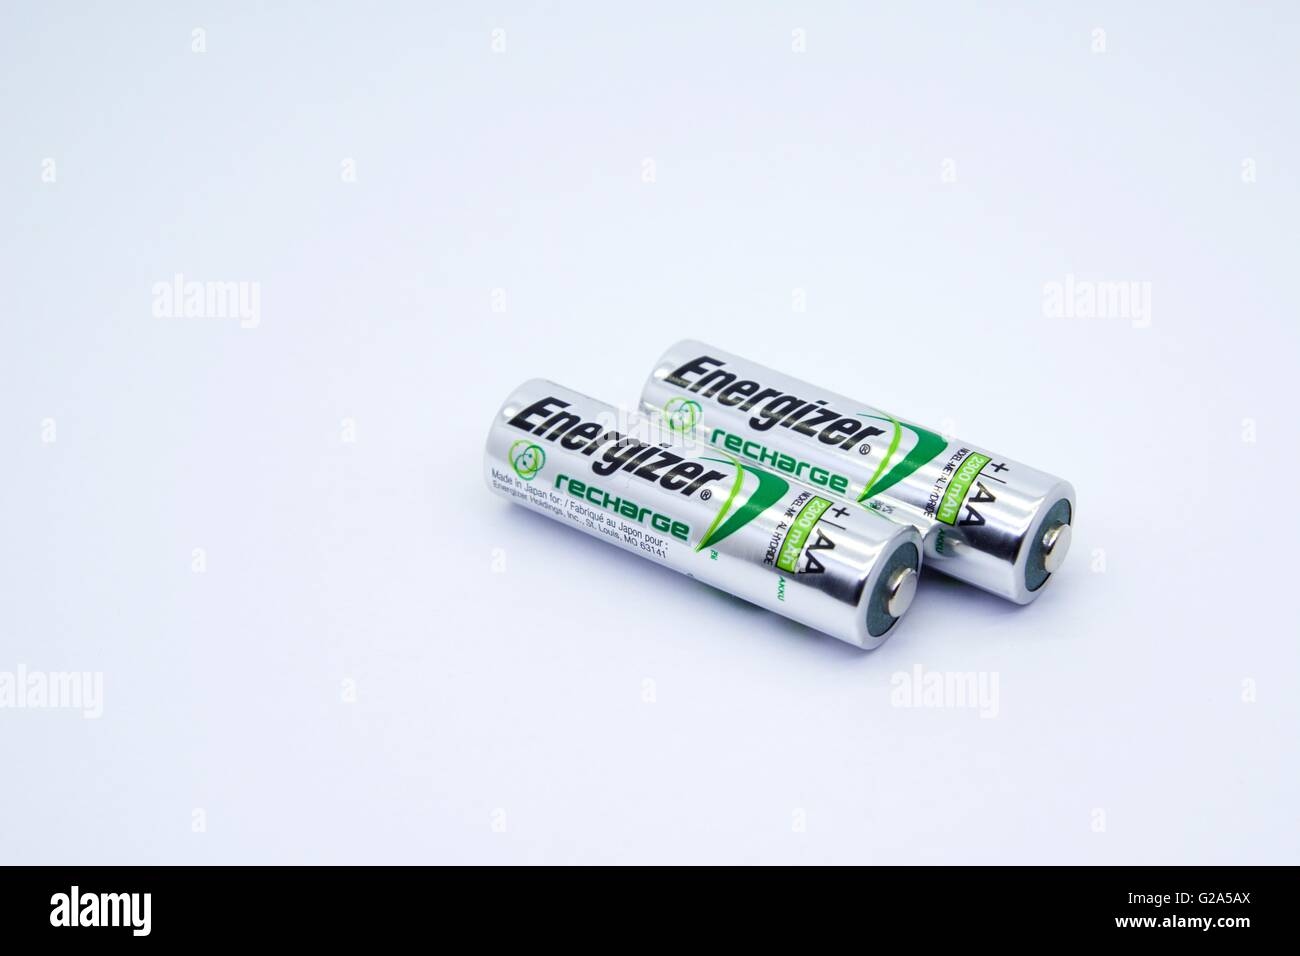 Rechargeable energizer batteries - Stock Image